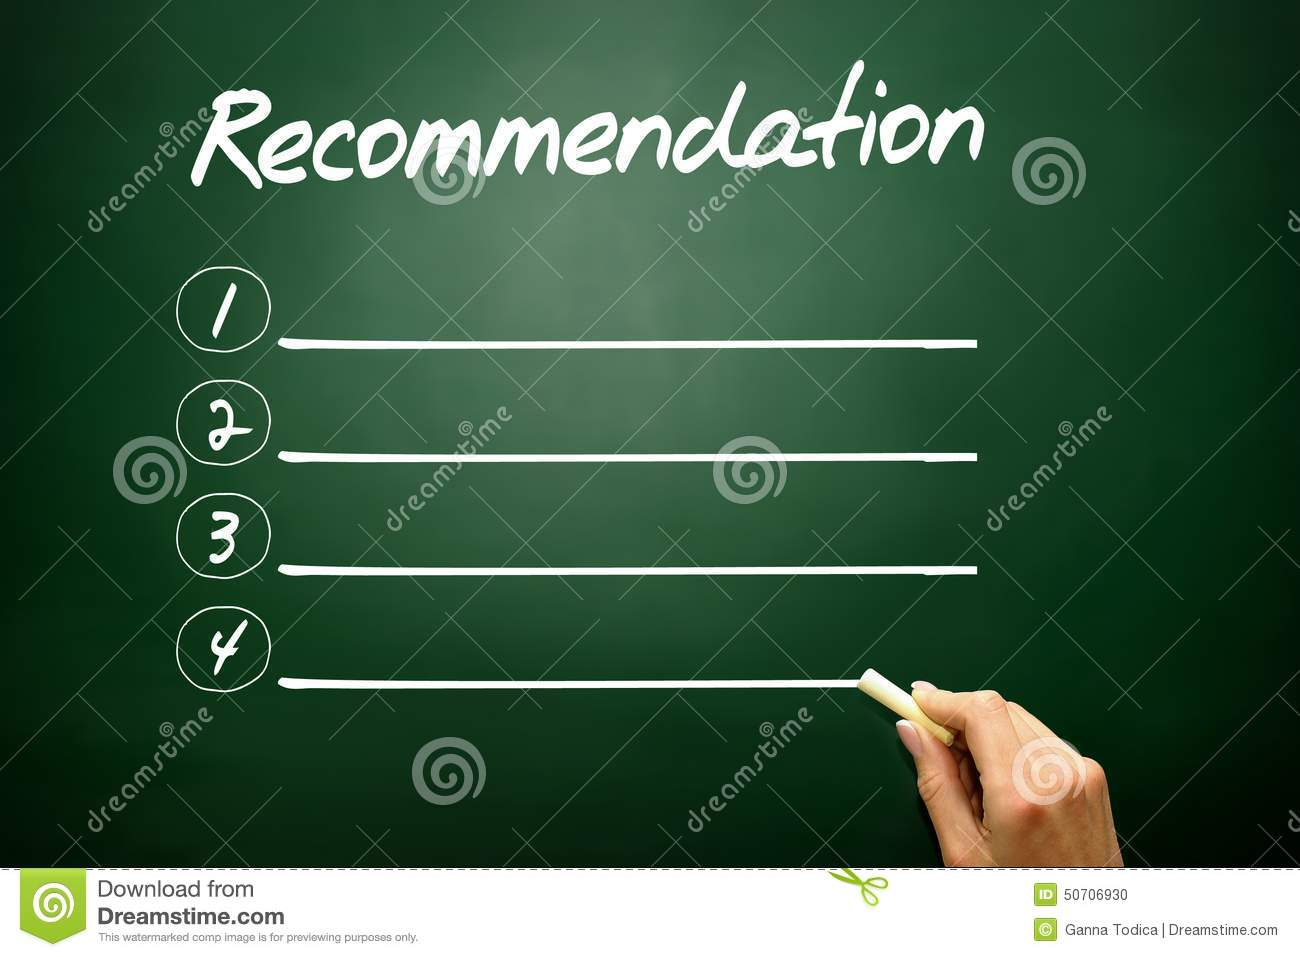 It Recommendation: Hand Drawn Recommendation Blank List Concept On Blackboard